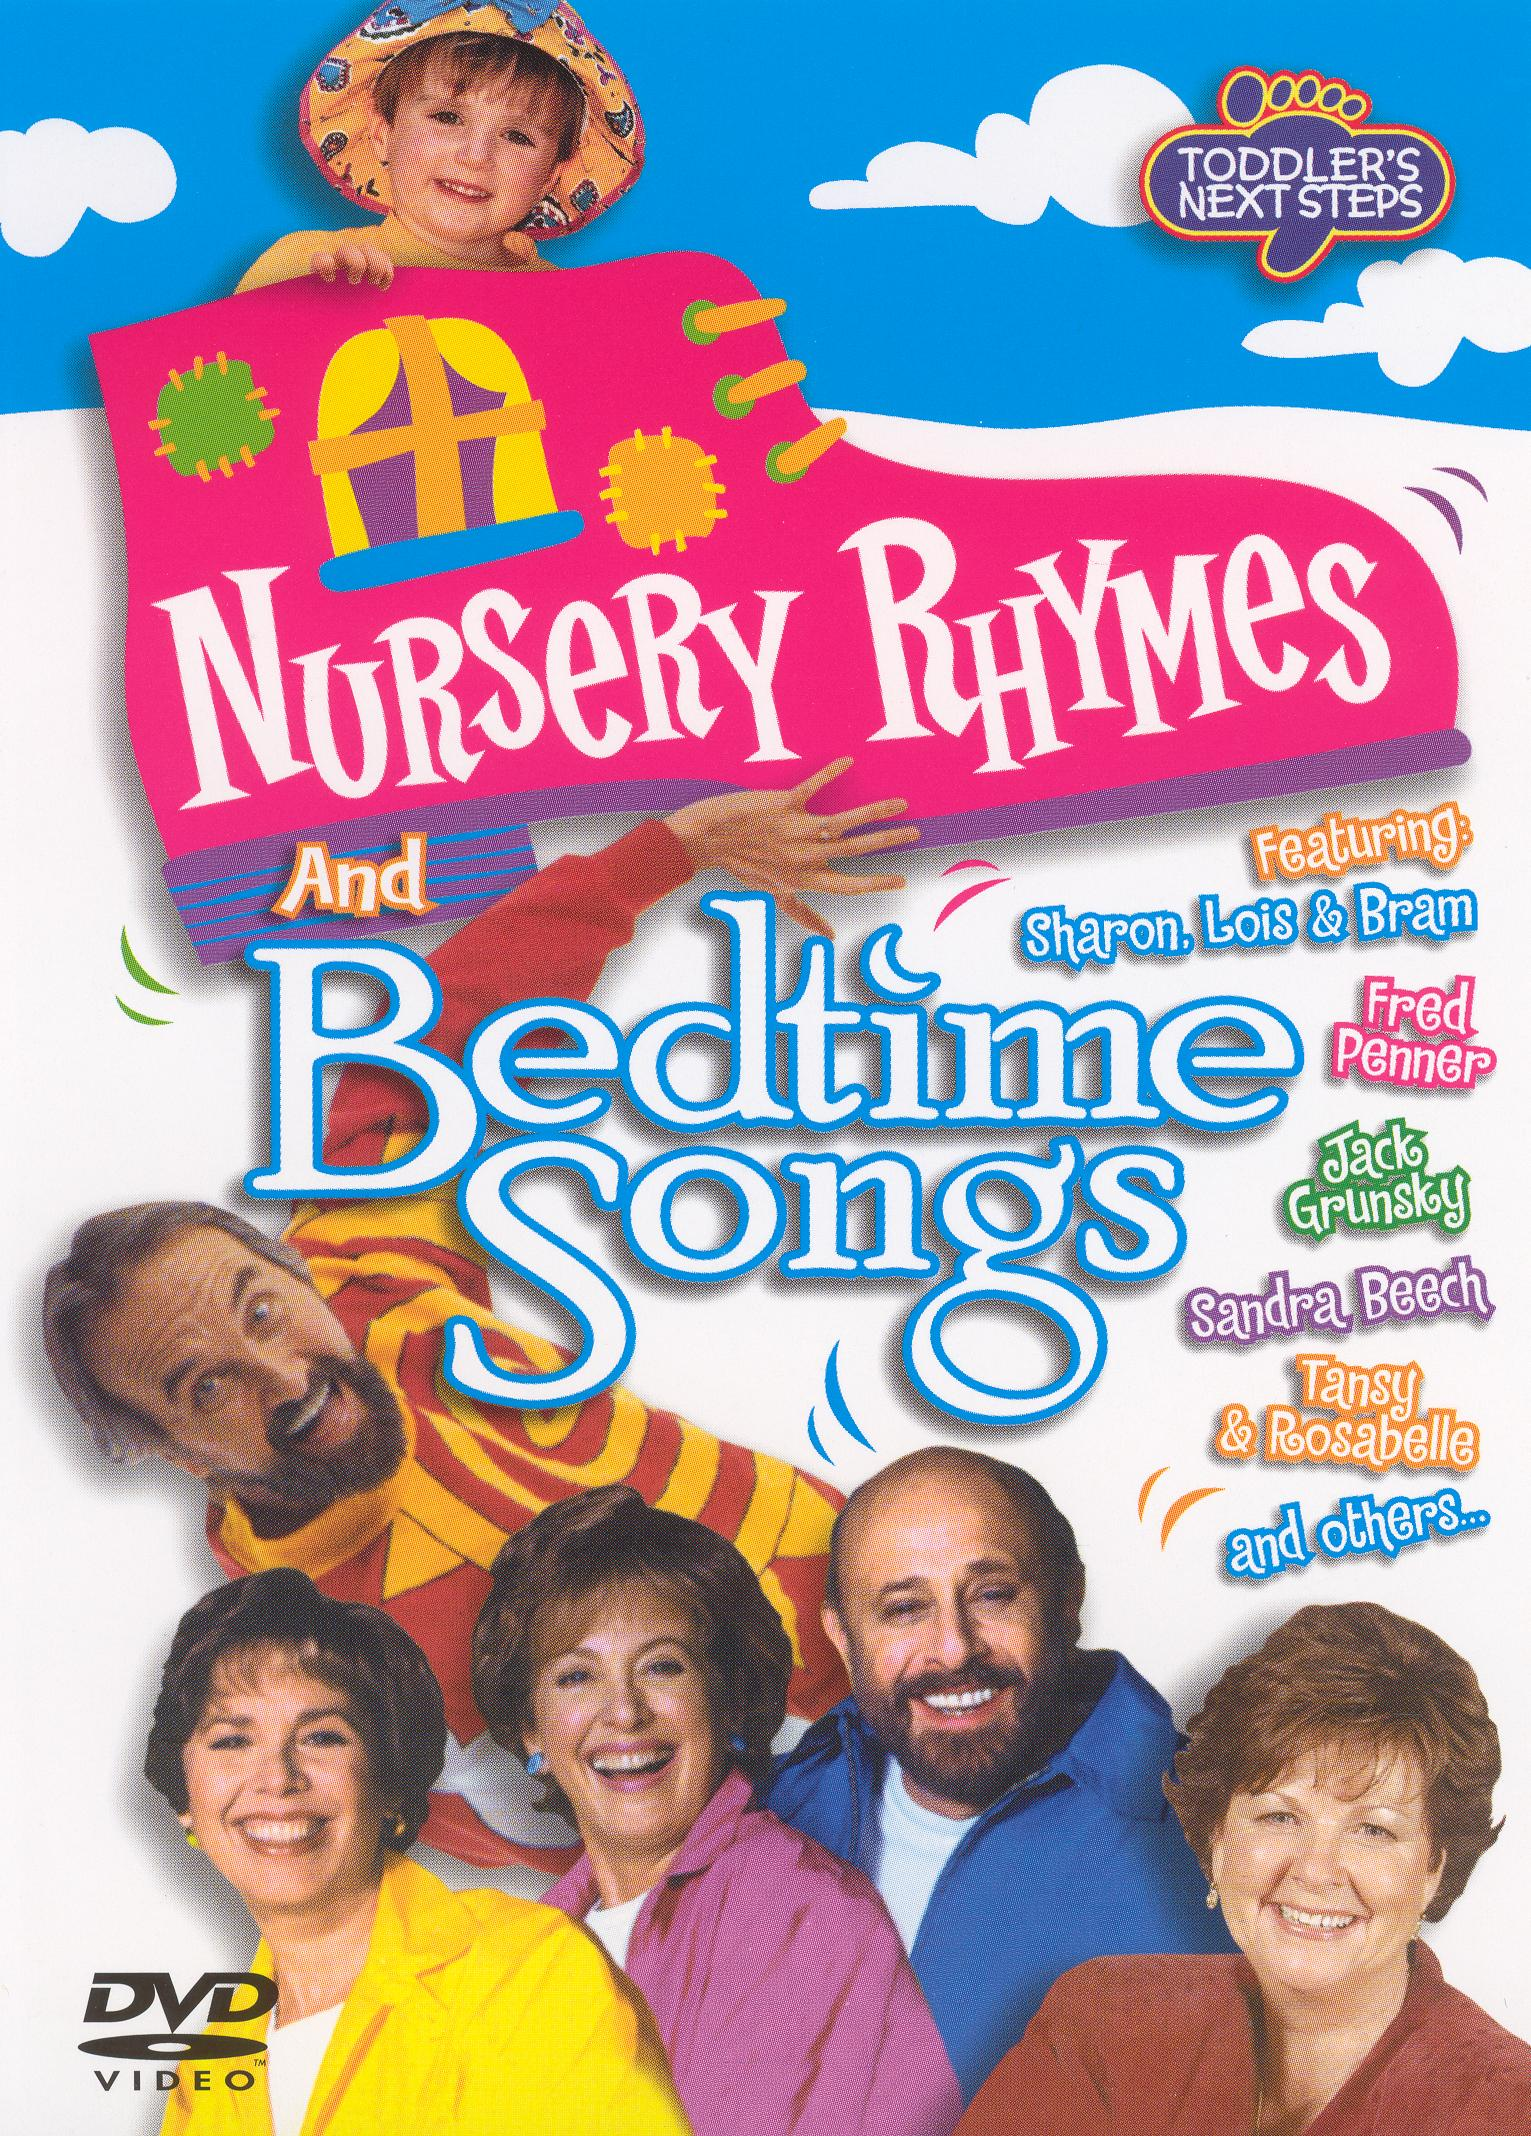 Toddler's Next Steps: Nursery Rhymes and Bedtime Songs